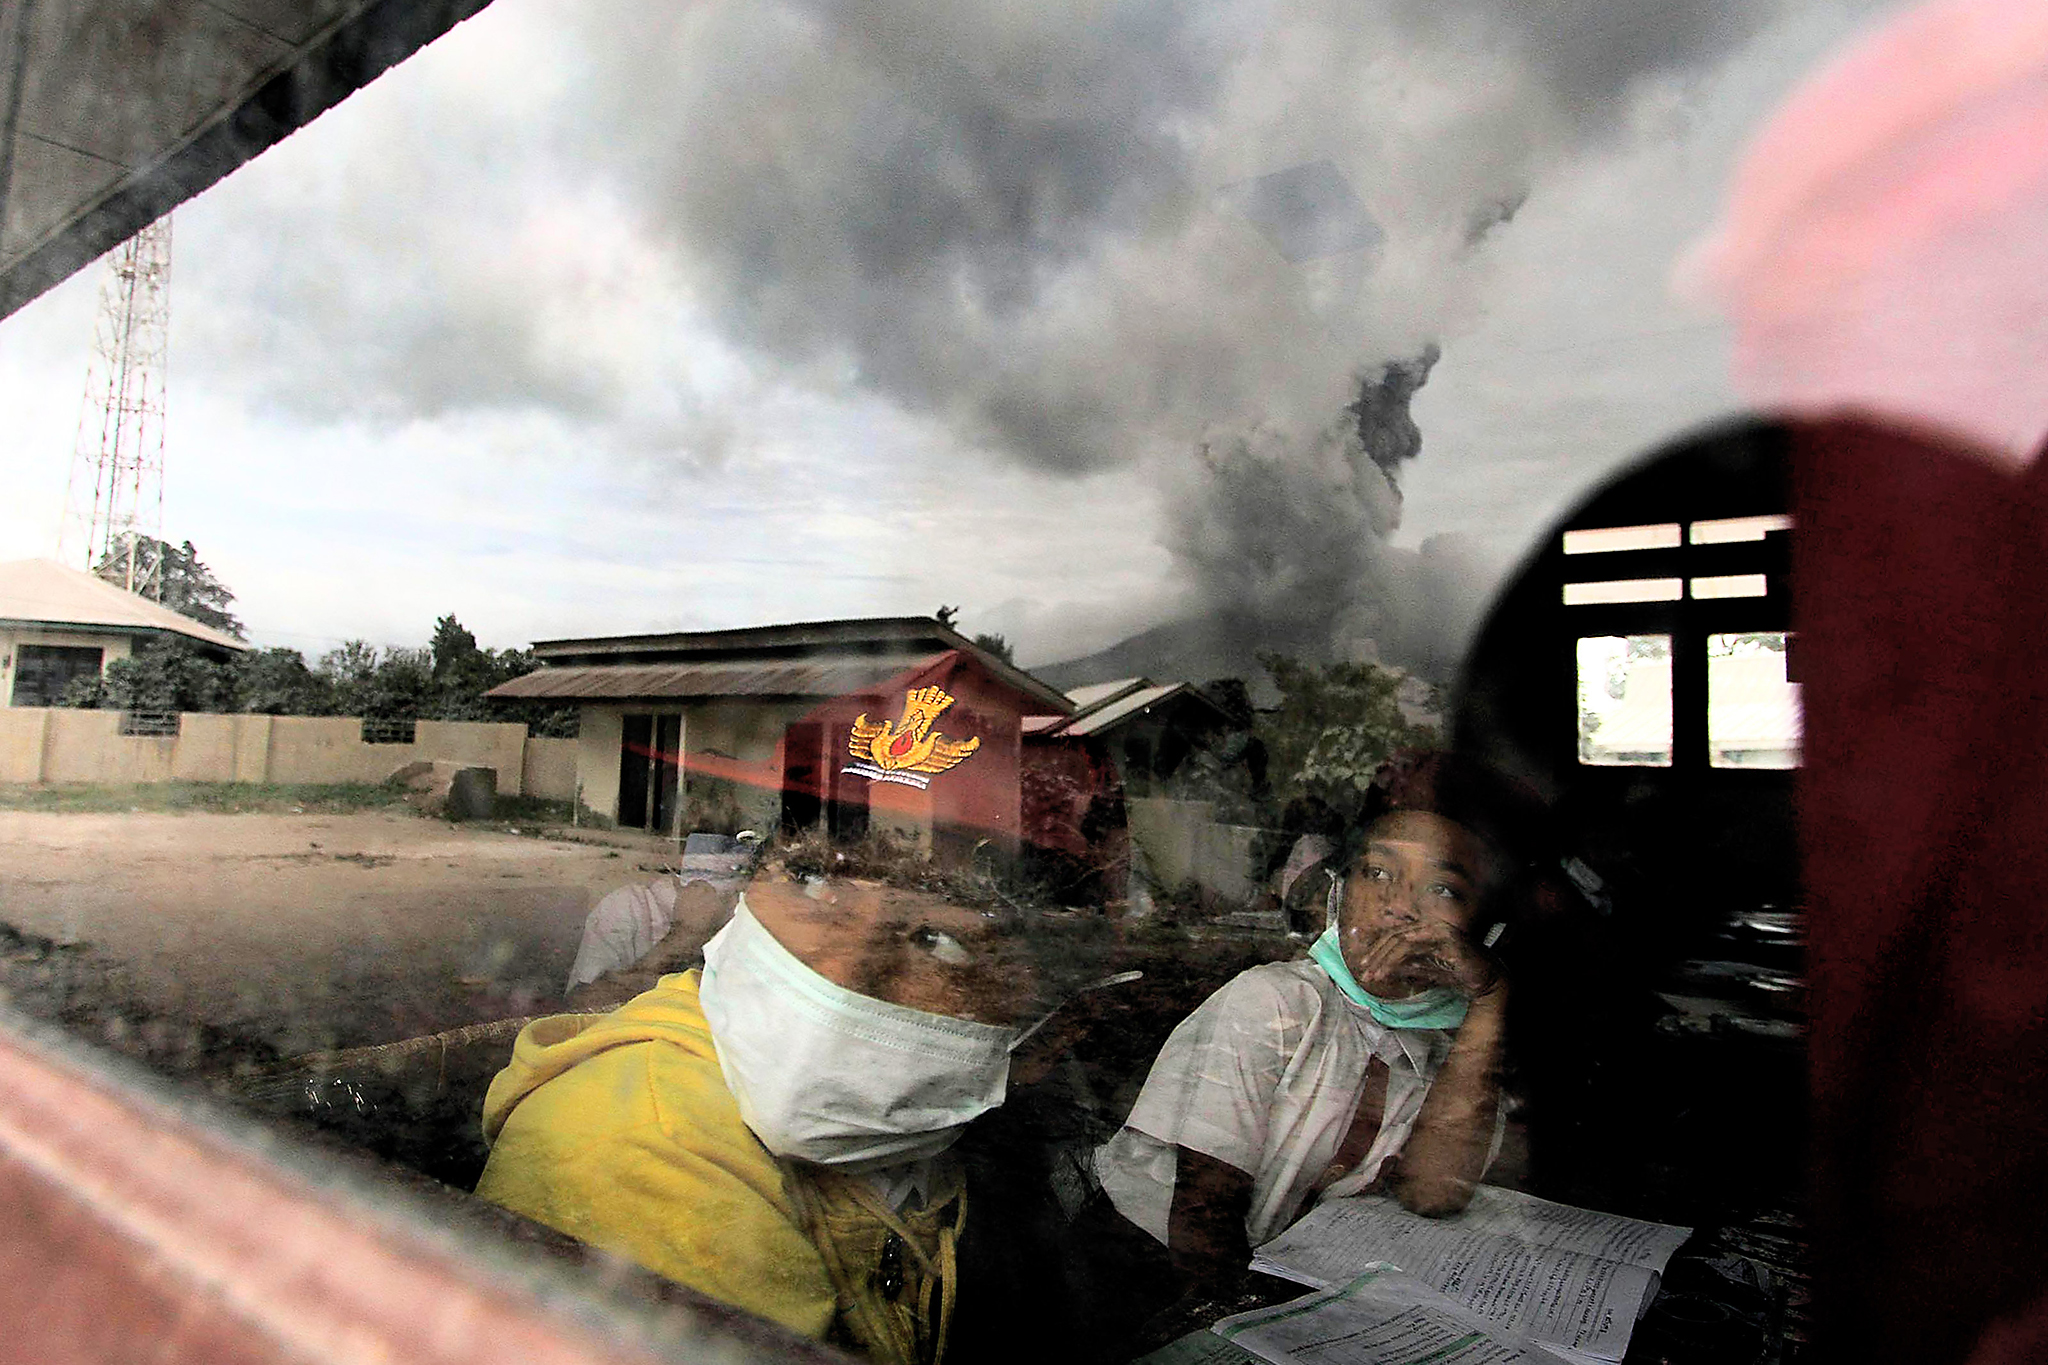 TOPSHOT - Primary school children wear masks while studying in the classroom in Karo district, North Sumatra province, on May 24, 2016, as Mount Sinabung is seen spewing out volcanic ash through the school window reflection.  Indonesian rescuers searched for survivors in scorched villages and devastated farmlands after a volcano erupted in clouds of searing ash and gas, killing seven and leaving others fighting life-threatening burns. / AFP PHOTO / FATIMA ELKAREEMFATIMA ELKAREEM/AFP/Getty Images